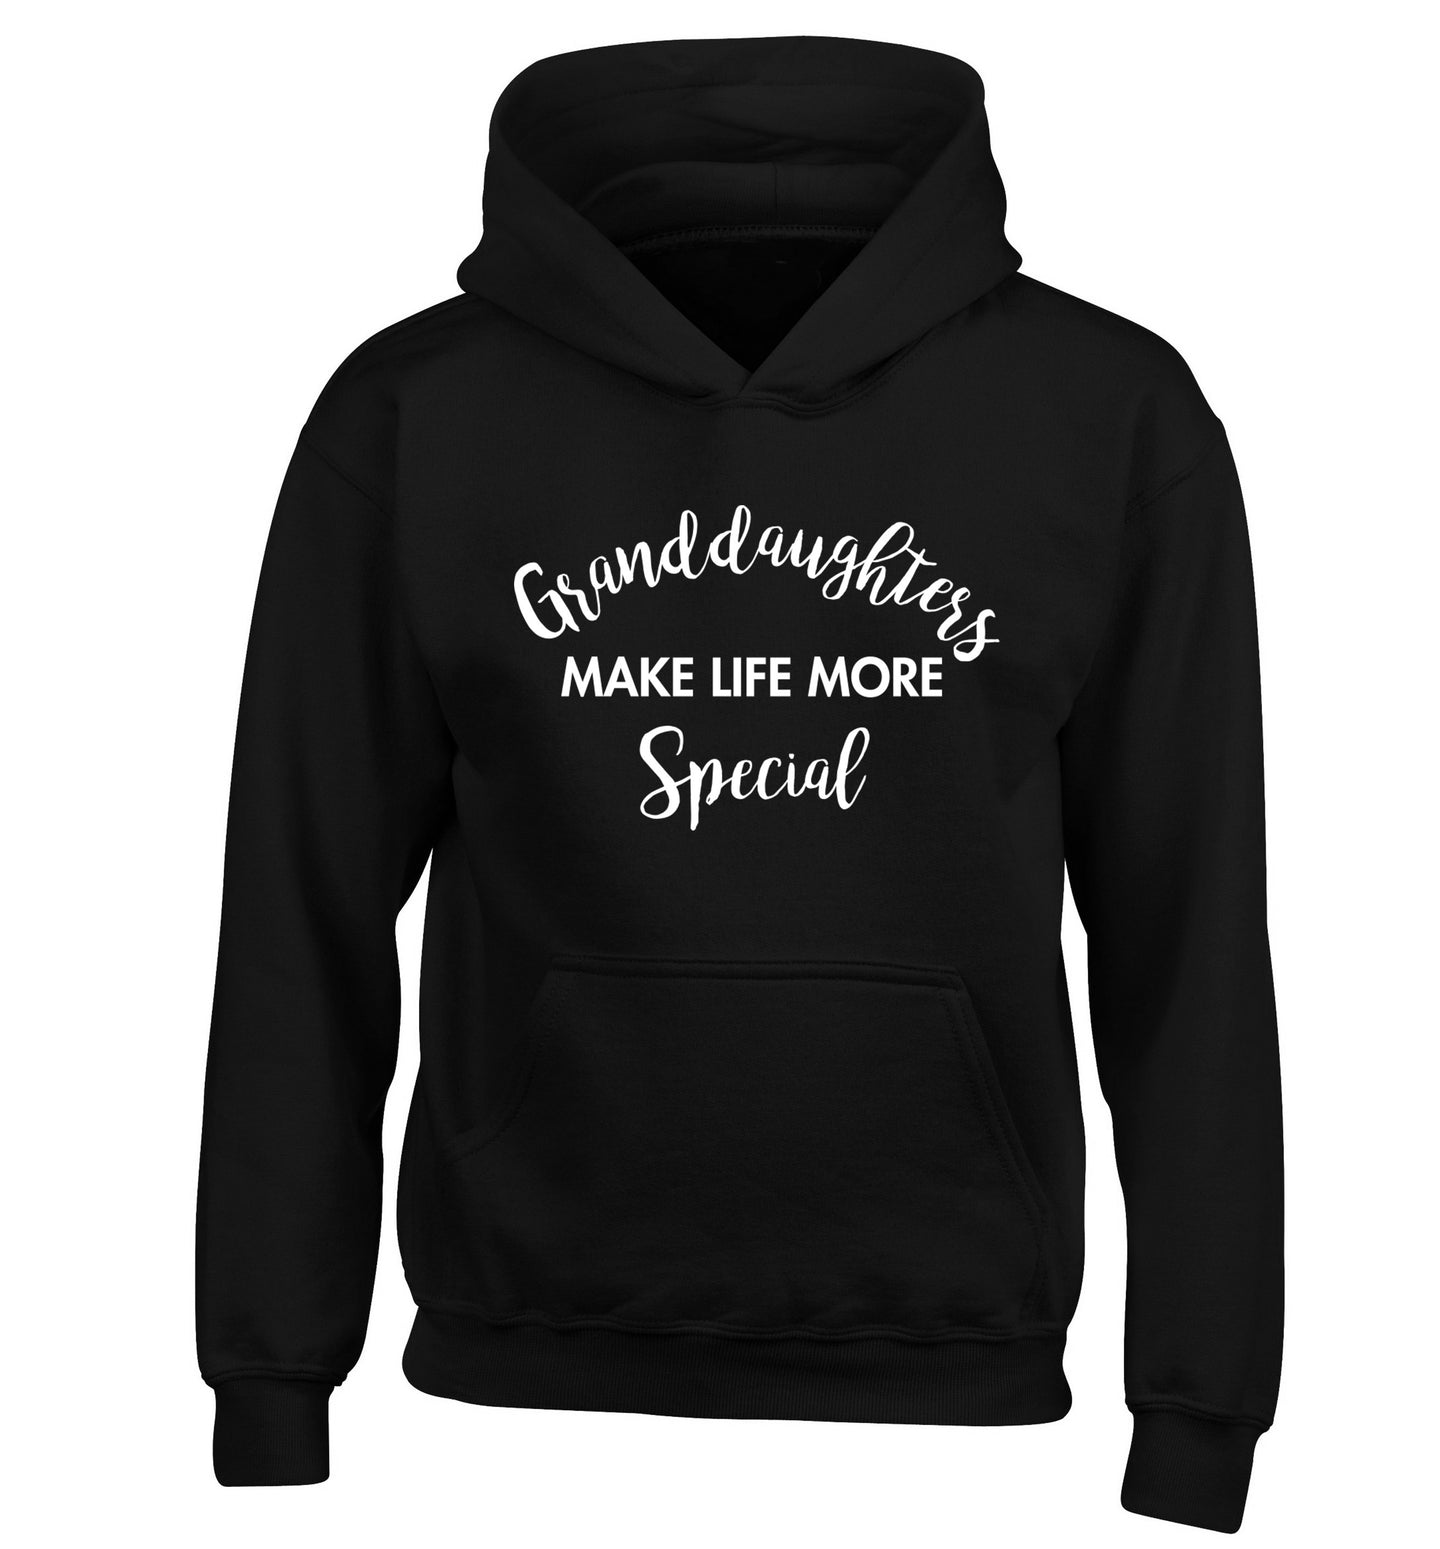 Granddaughters make life more special children's black hoodie 12-14 Years